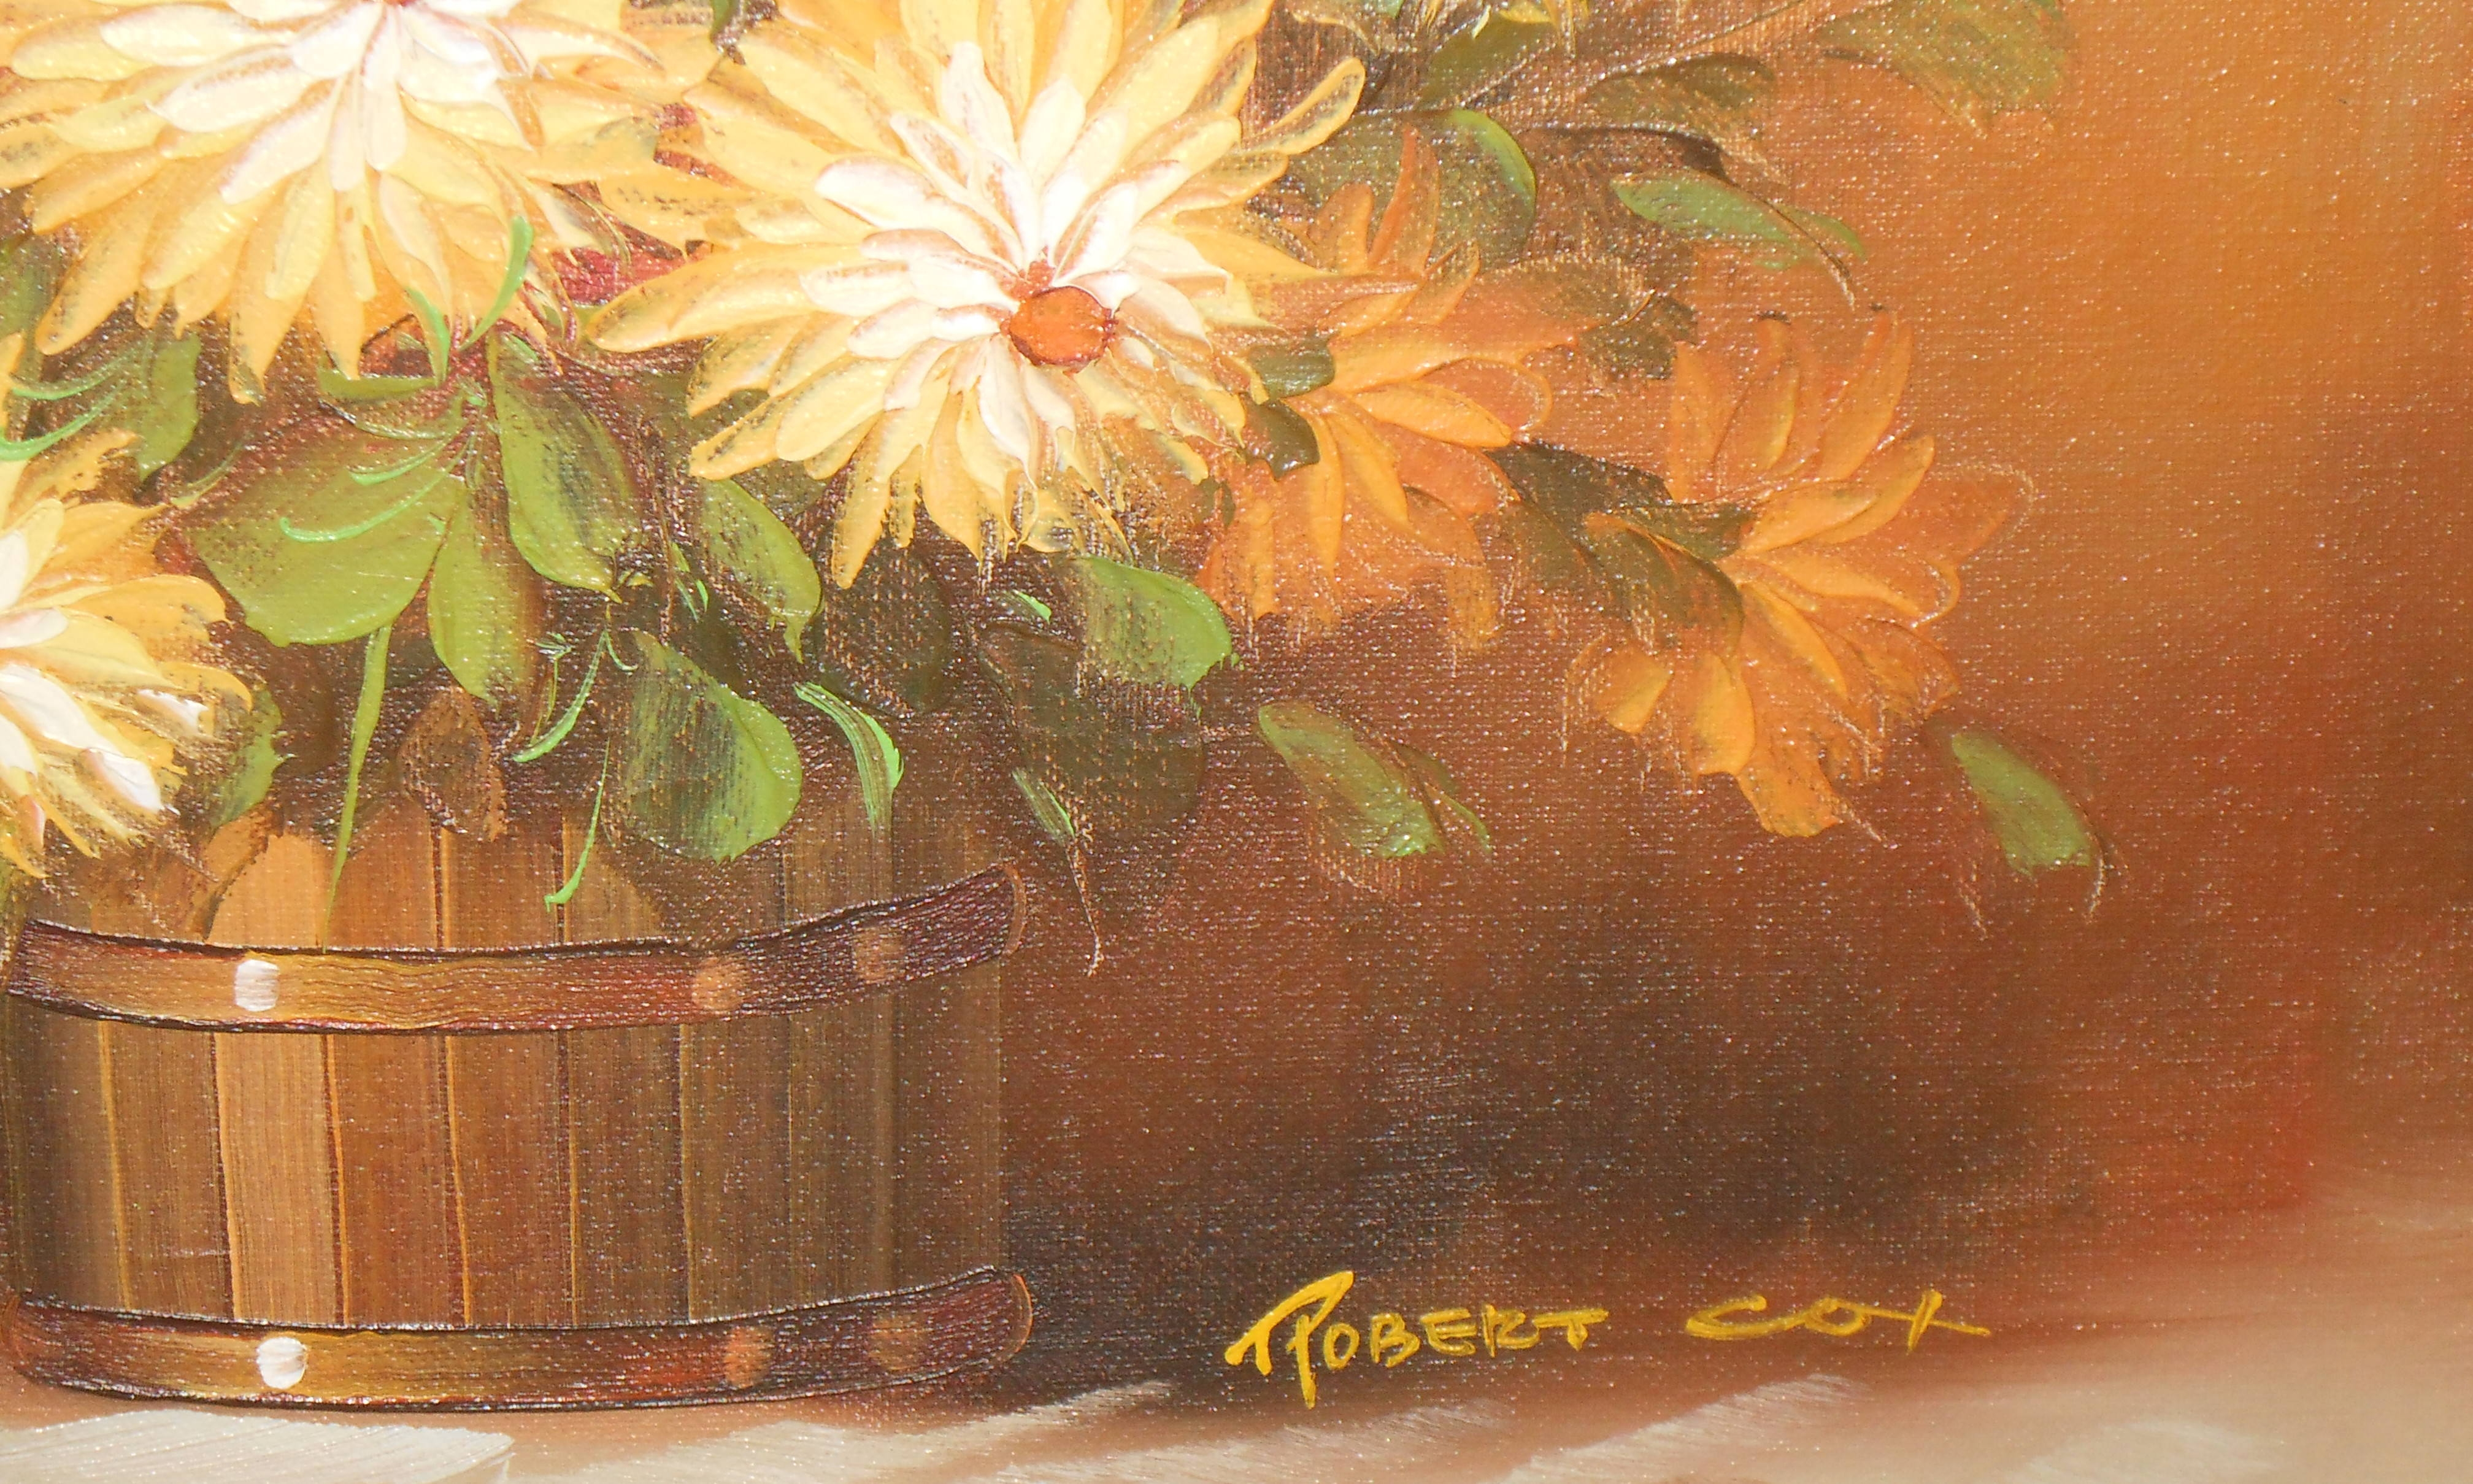 Vintage Robert Cox Oil Painting of Yellow and Orange Flowers in a Wooden Planter (1934-2001) (c)